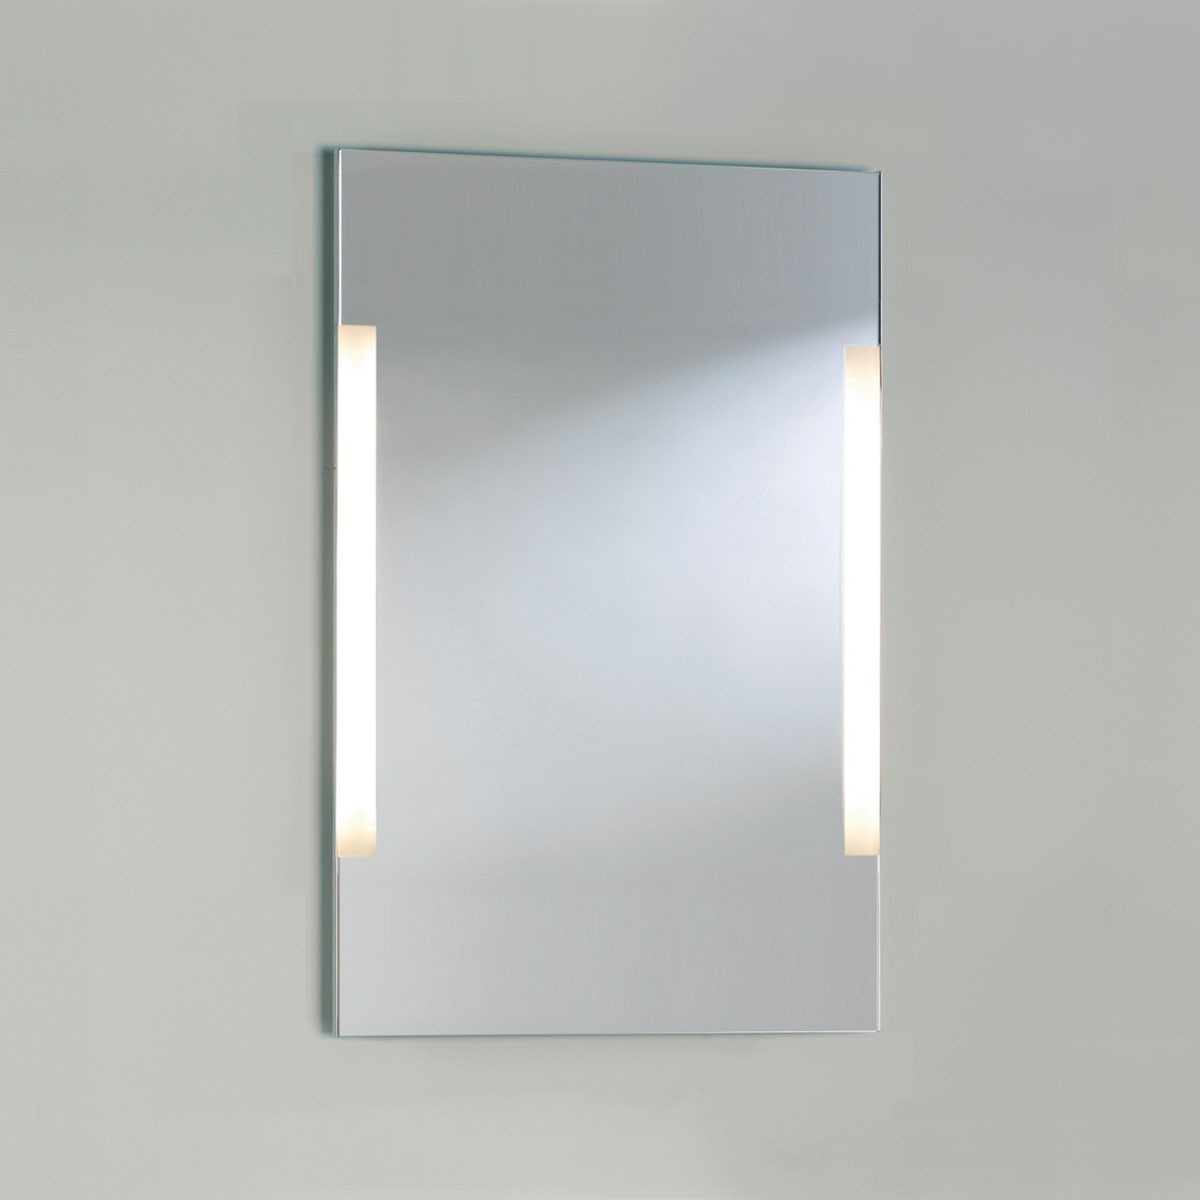 Astro imola 900 polished chrome bathroom mirror light at uk electrical supplies Polished chrome bathroom mirrors